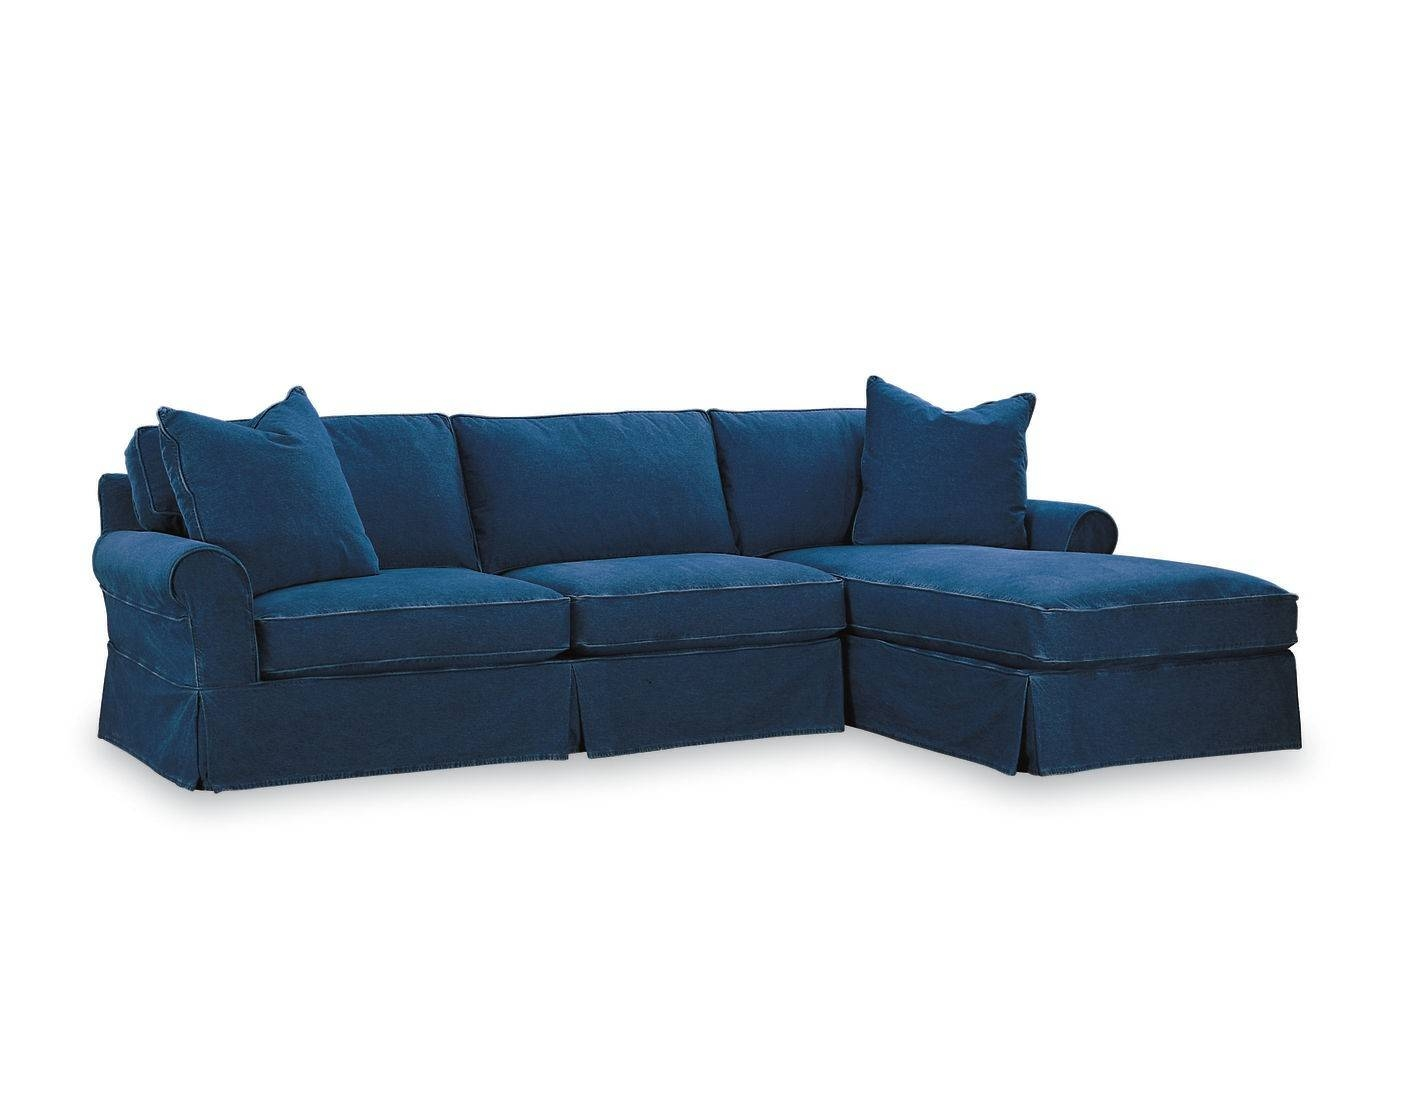 American Furniture | Nantucket Chaise Sectional | Lee Industries within Lee Industries Sectional Sofa (Image 3 of 25)